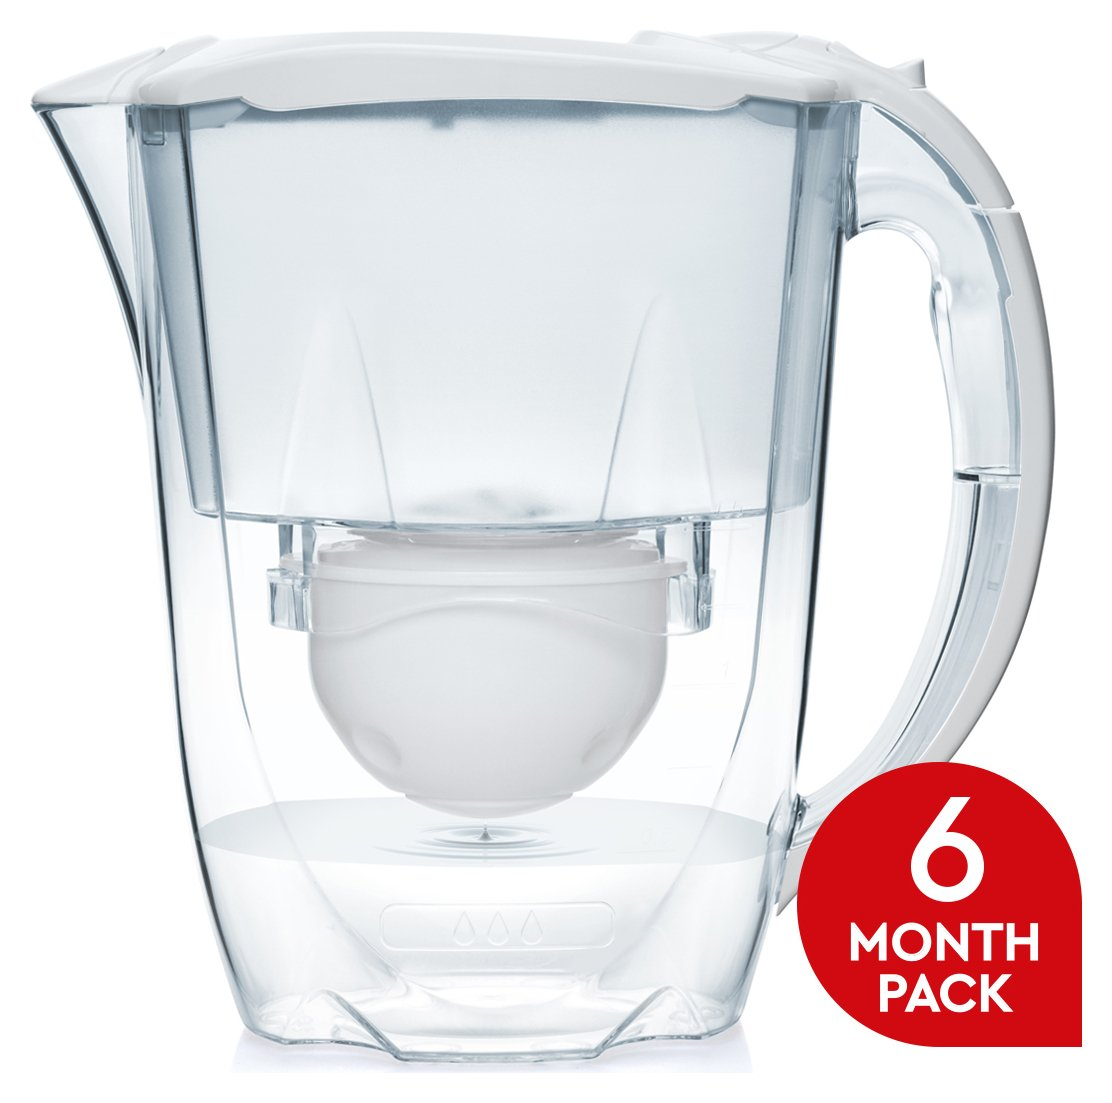 Image of Aqua Optima - Oria White Jug and Cartridges - 3 Pack